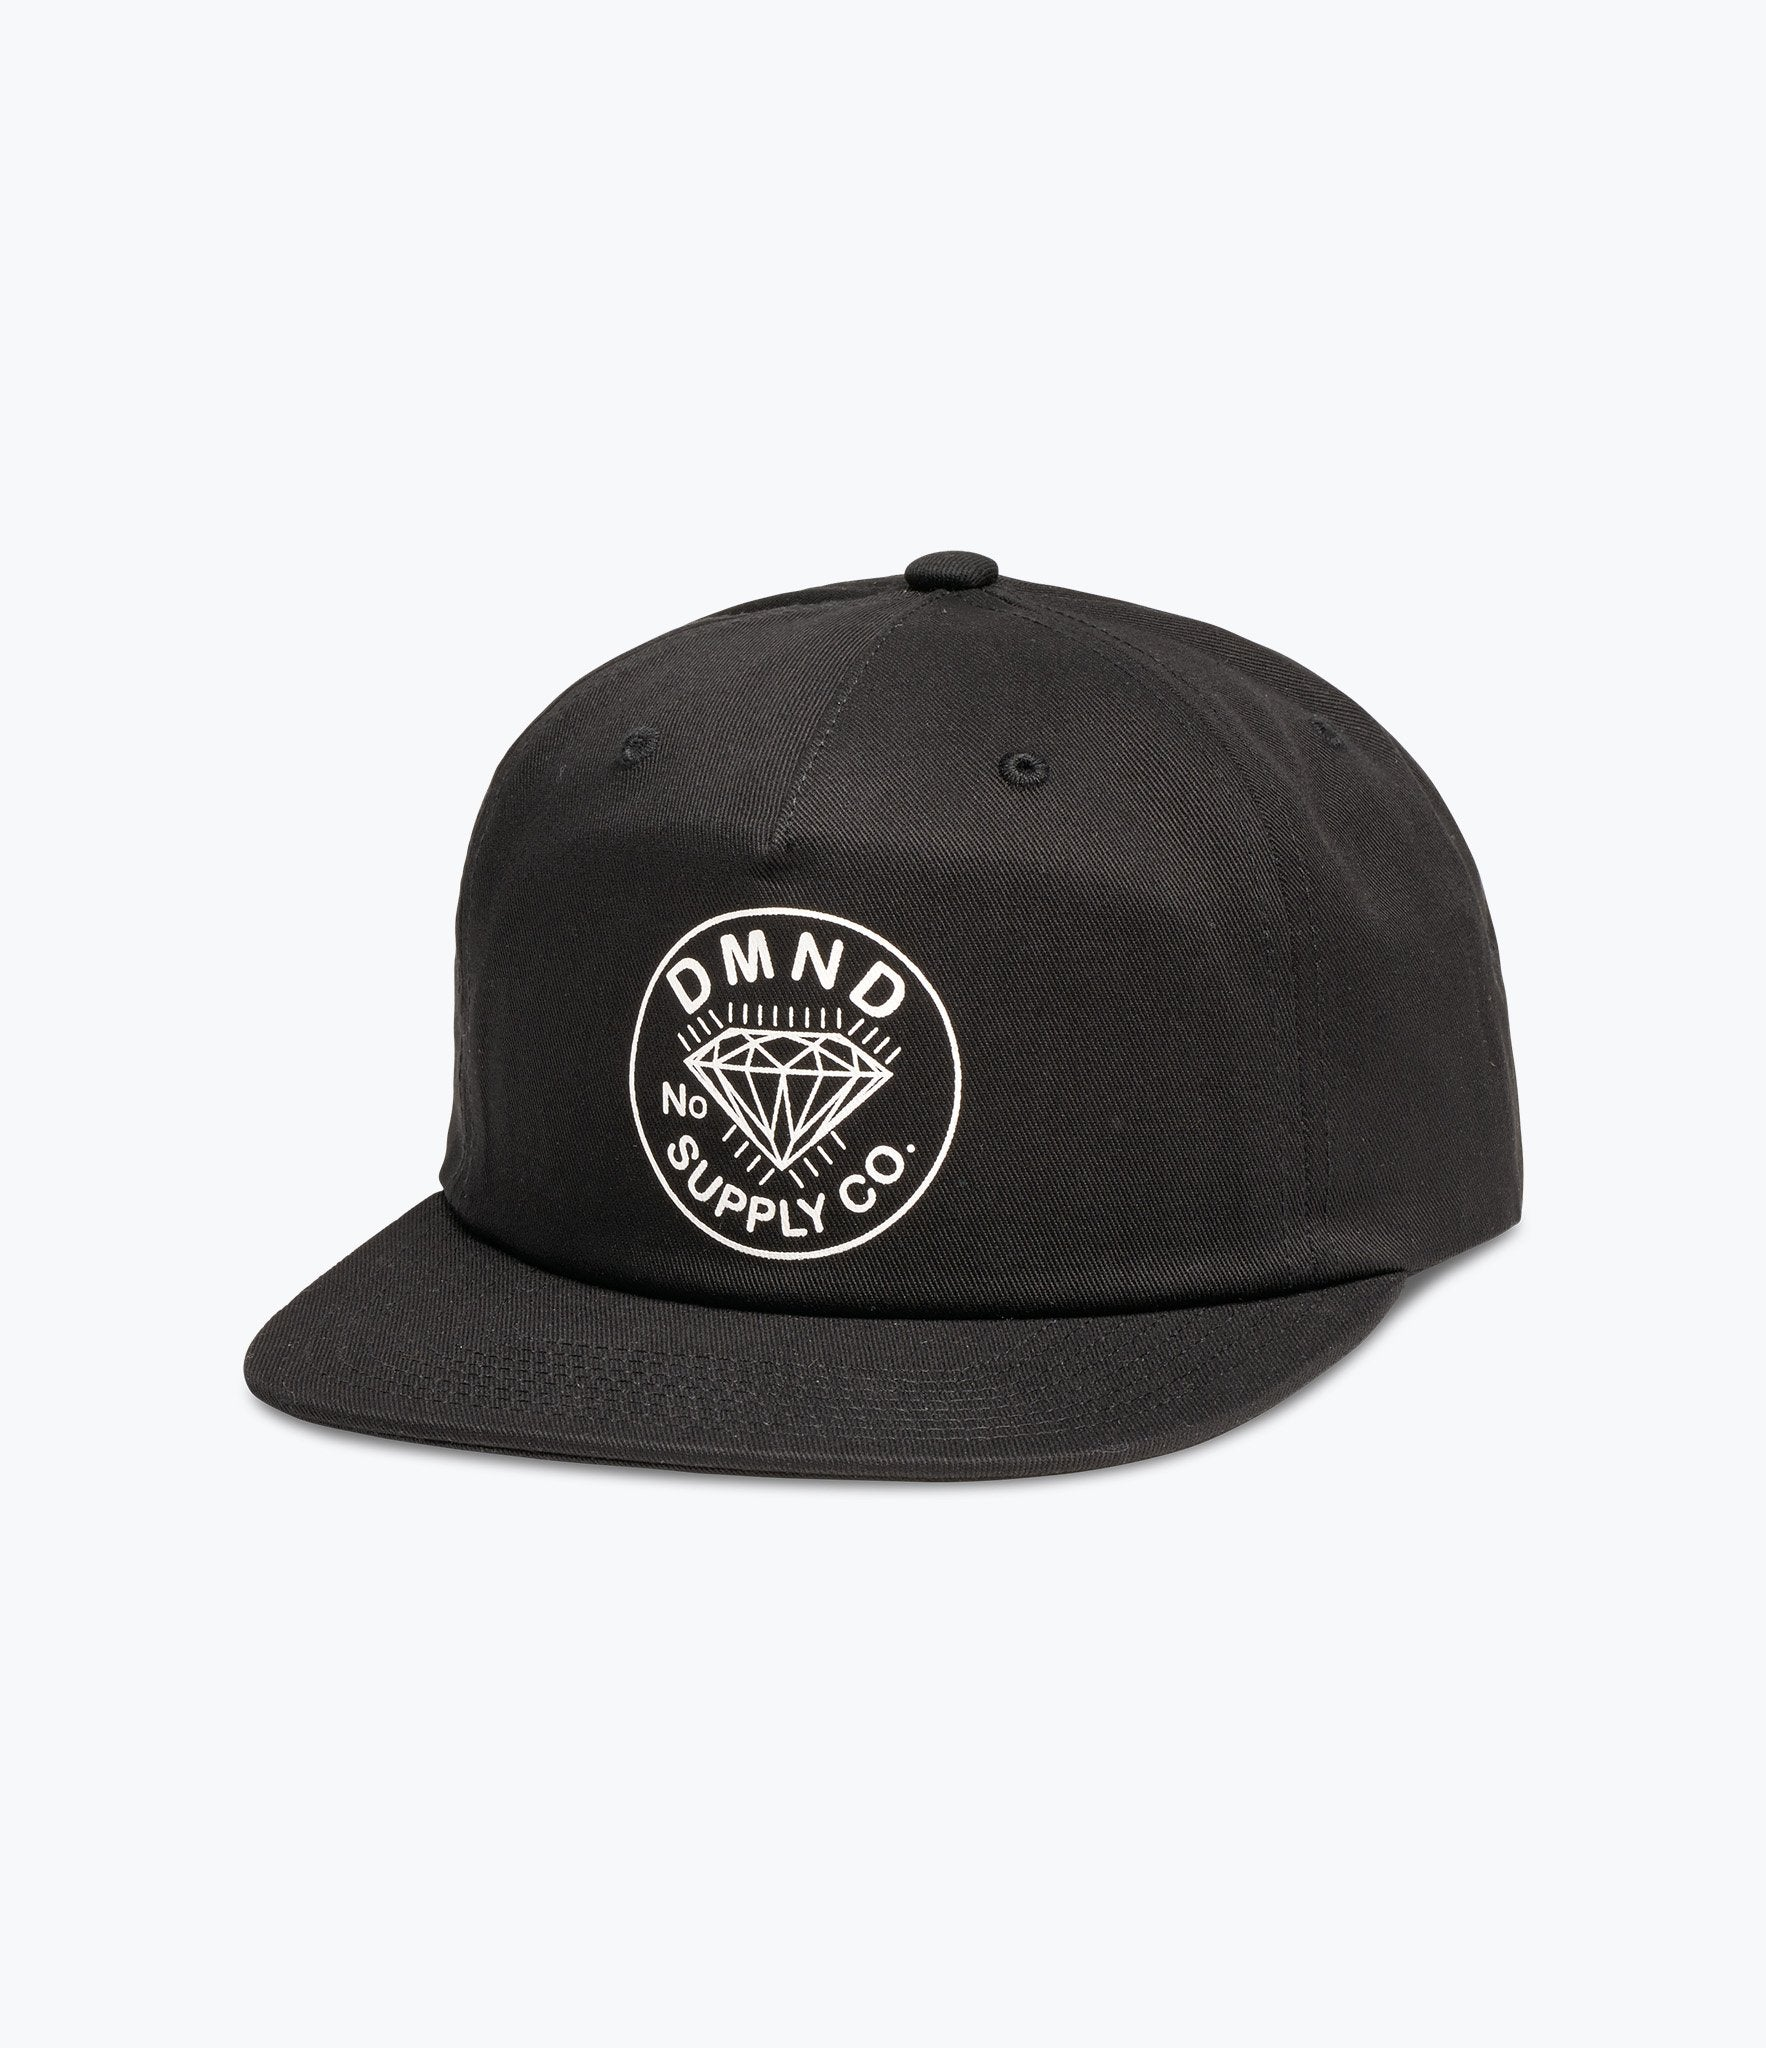 cbf25b59922f88 Trader Snapback - Diamond Supply Co.